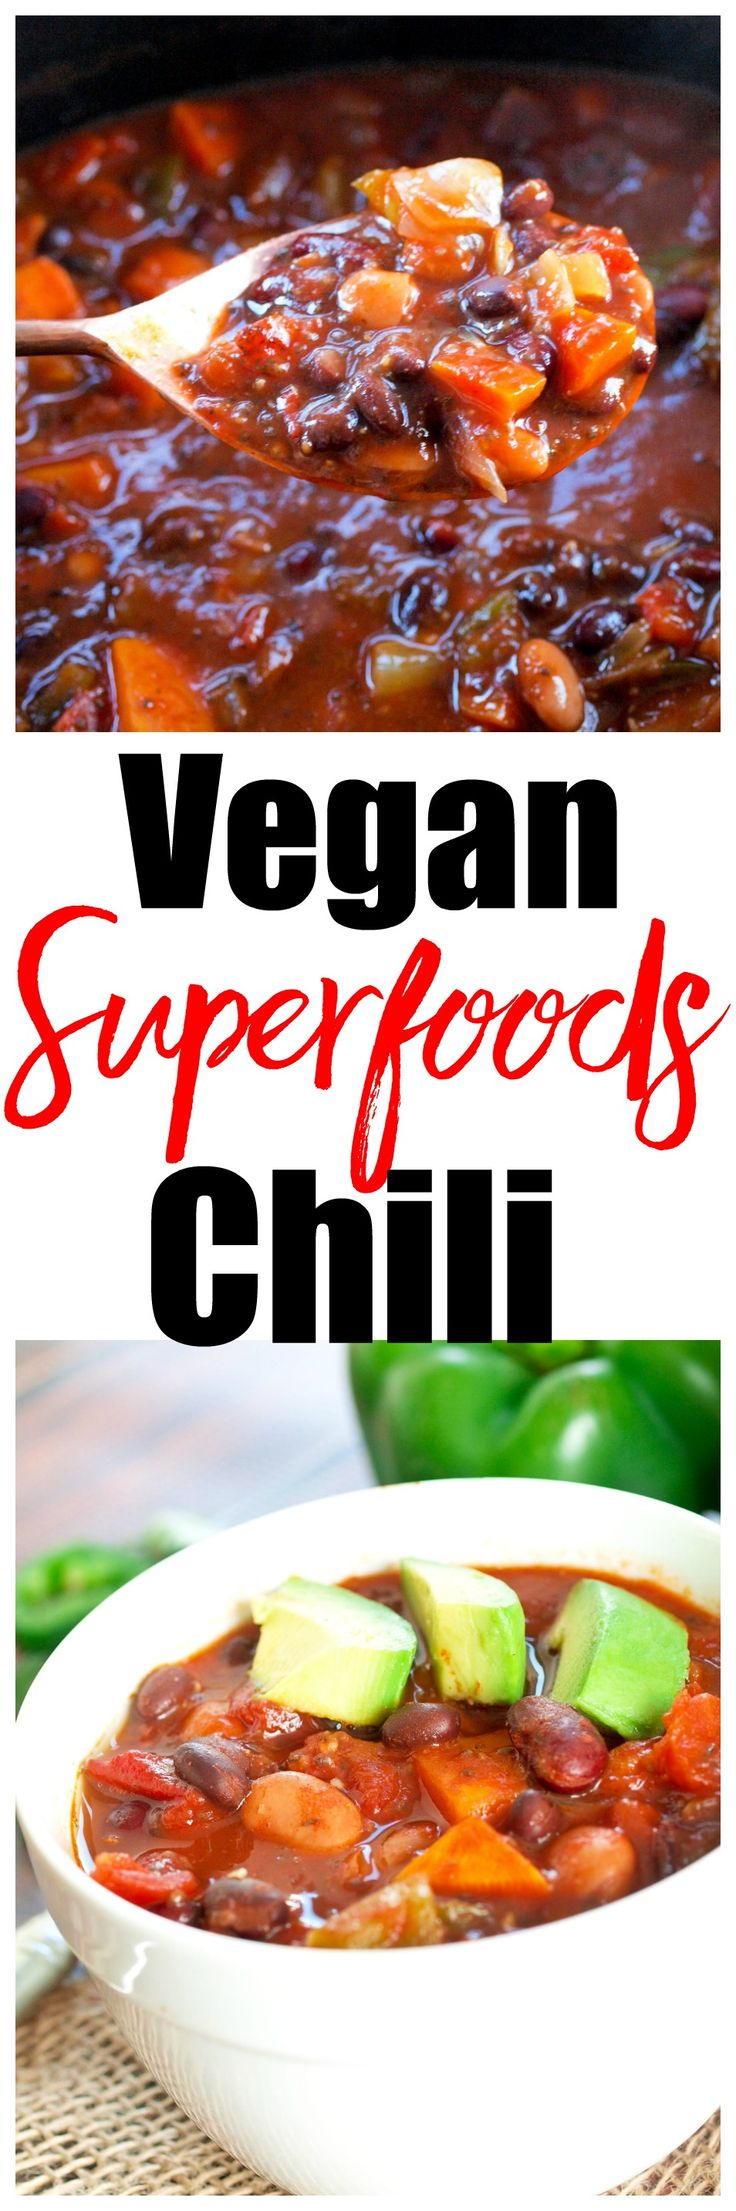 Crock Pot Brand Slow Cooker Vegan Superfoods Chili Recipe